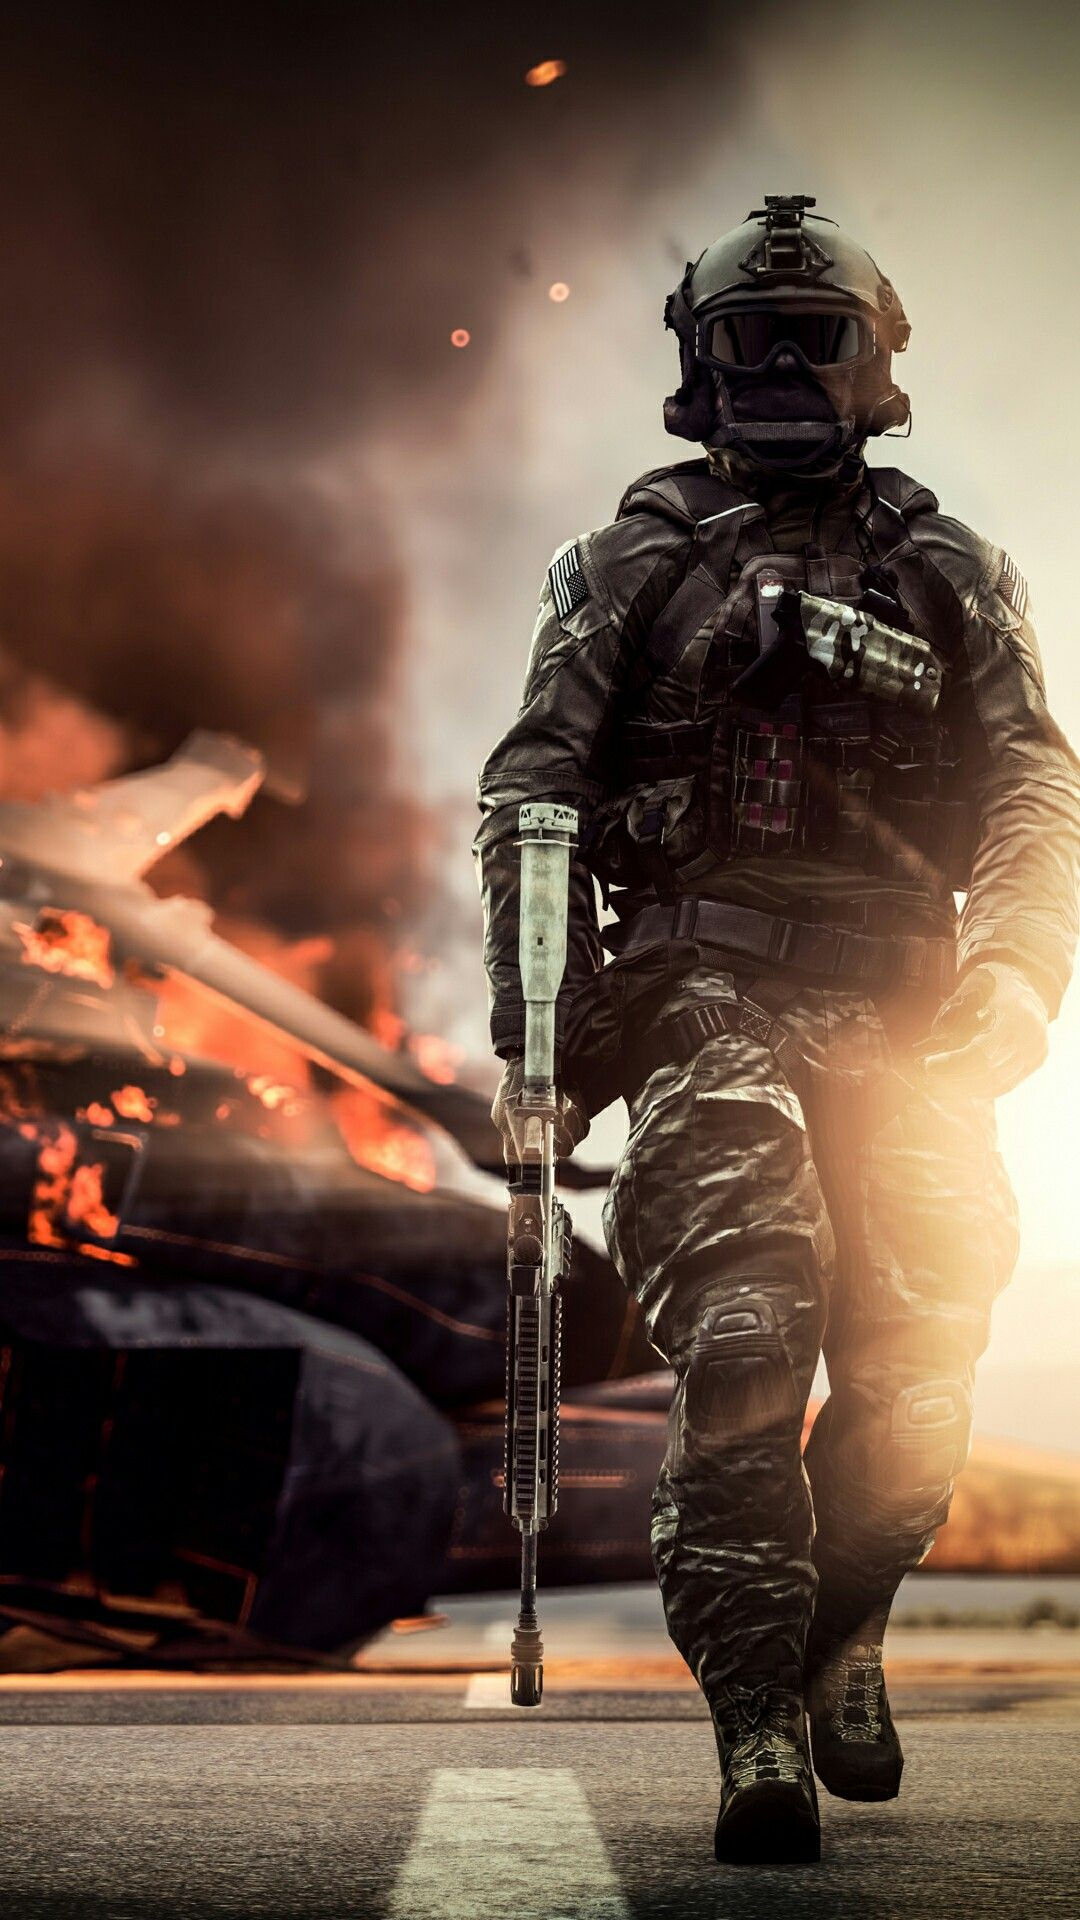 Pin By Gamephotographers On Game Wallpaper Army Wallpaper Military Wallpaper Indian Army Wallpapers